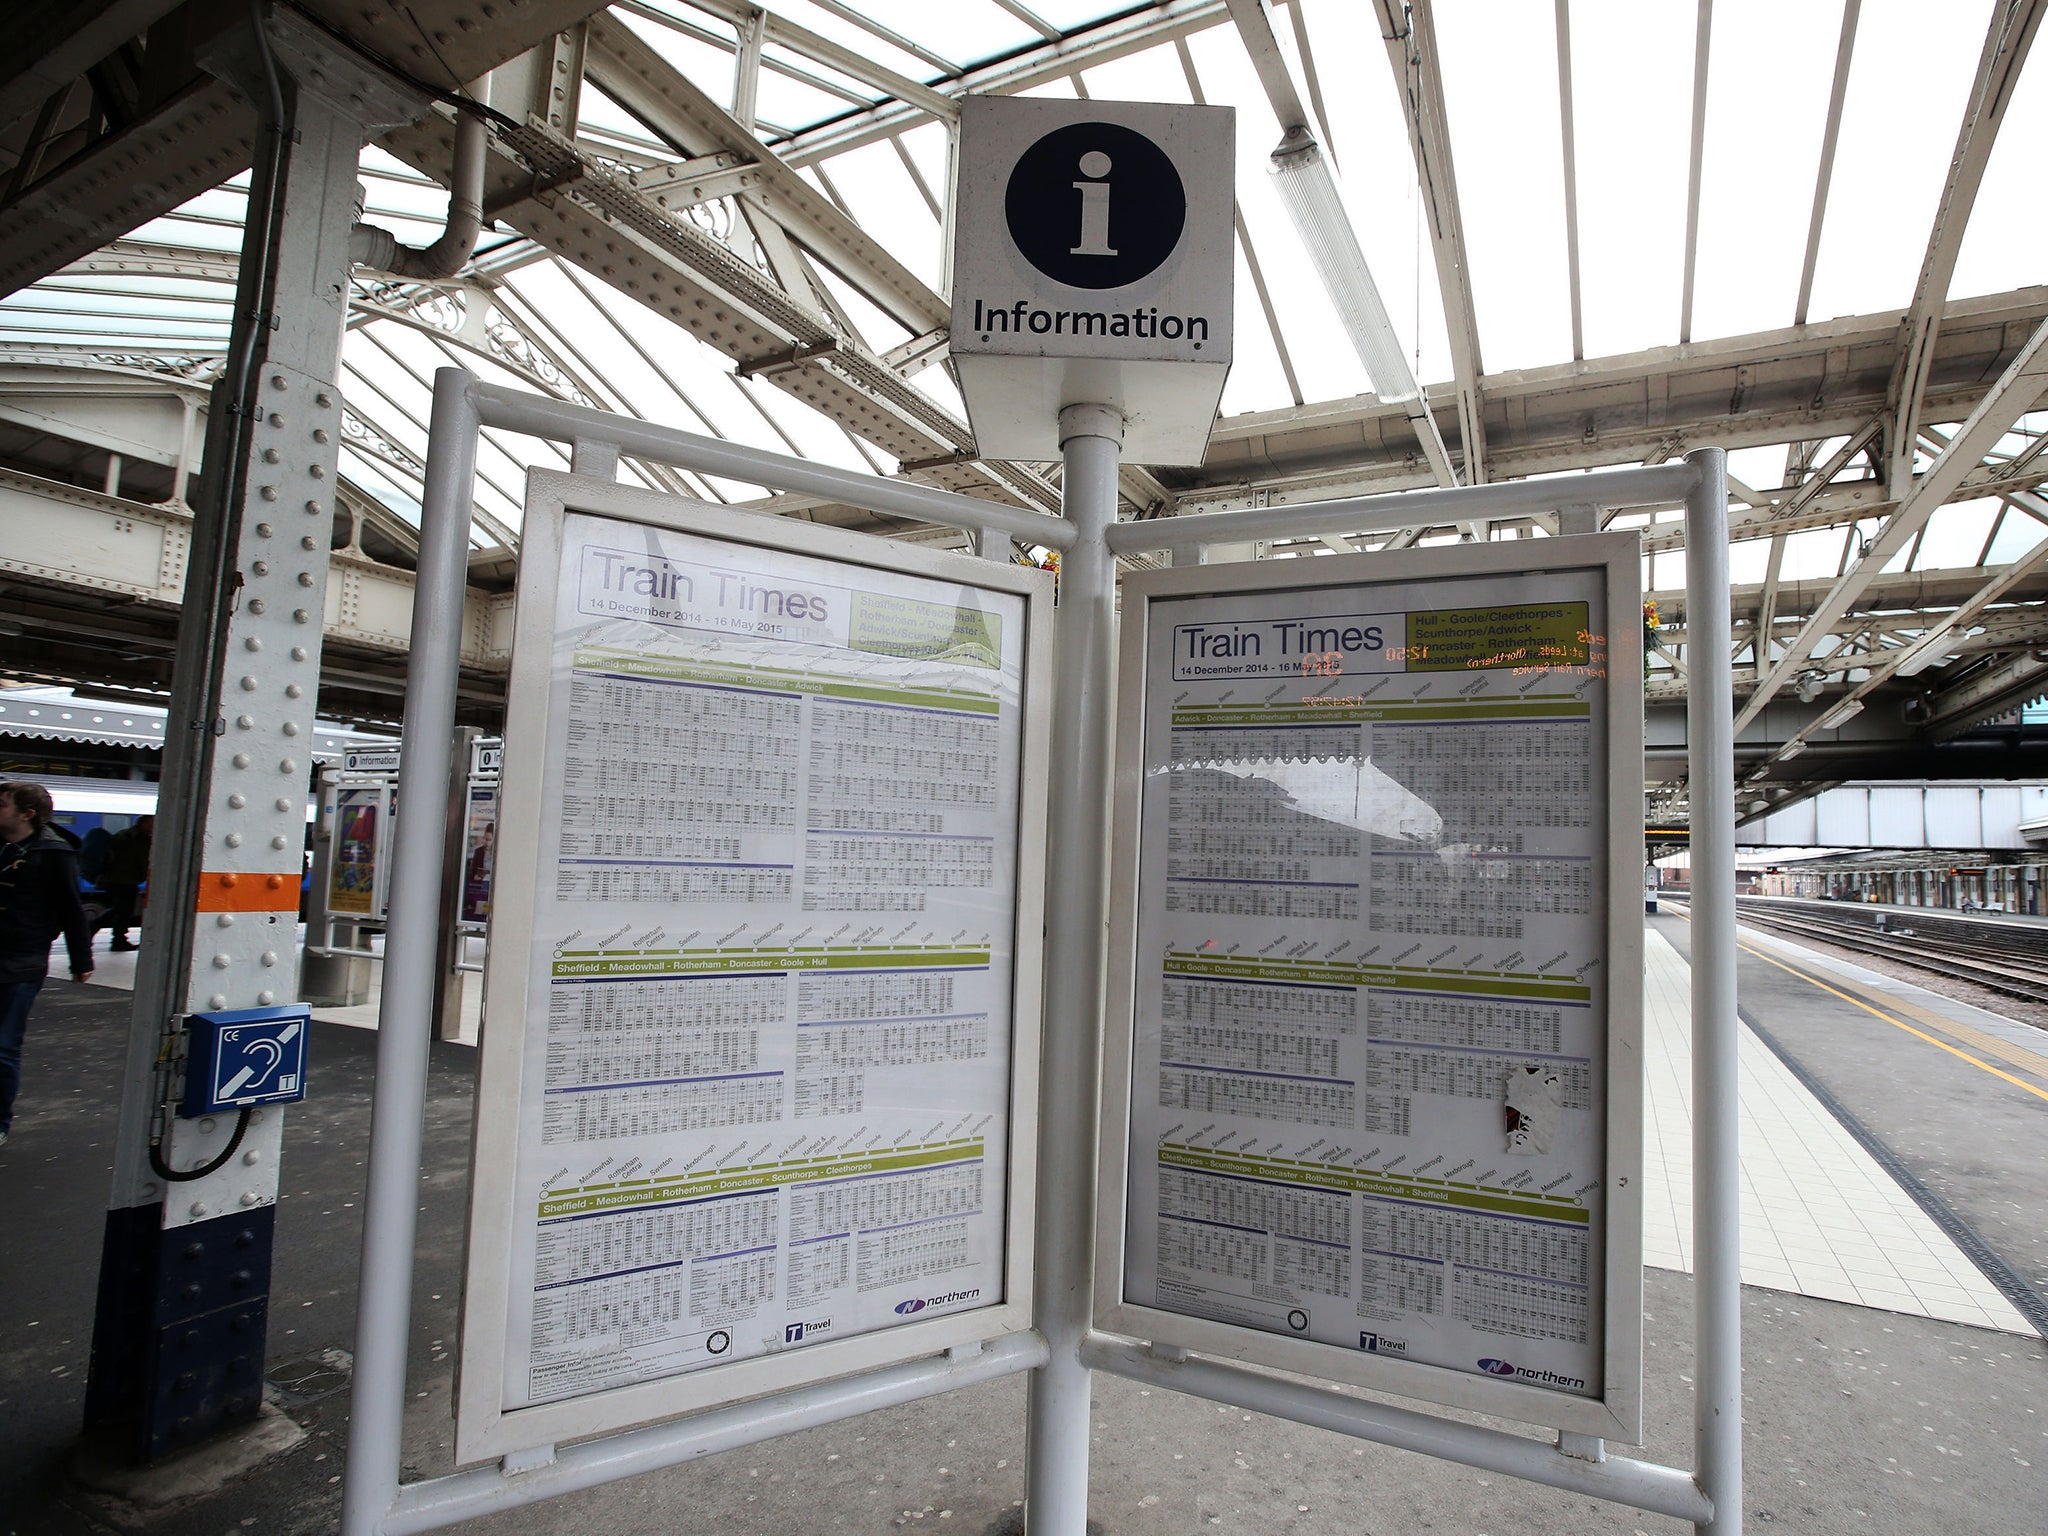 Bank holiday travel: Thousands of rail passengers face disruption over Easter weekend